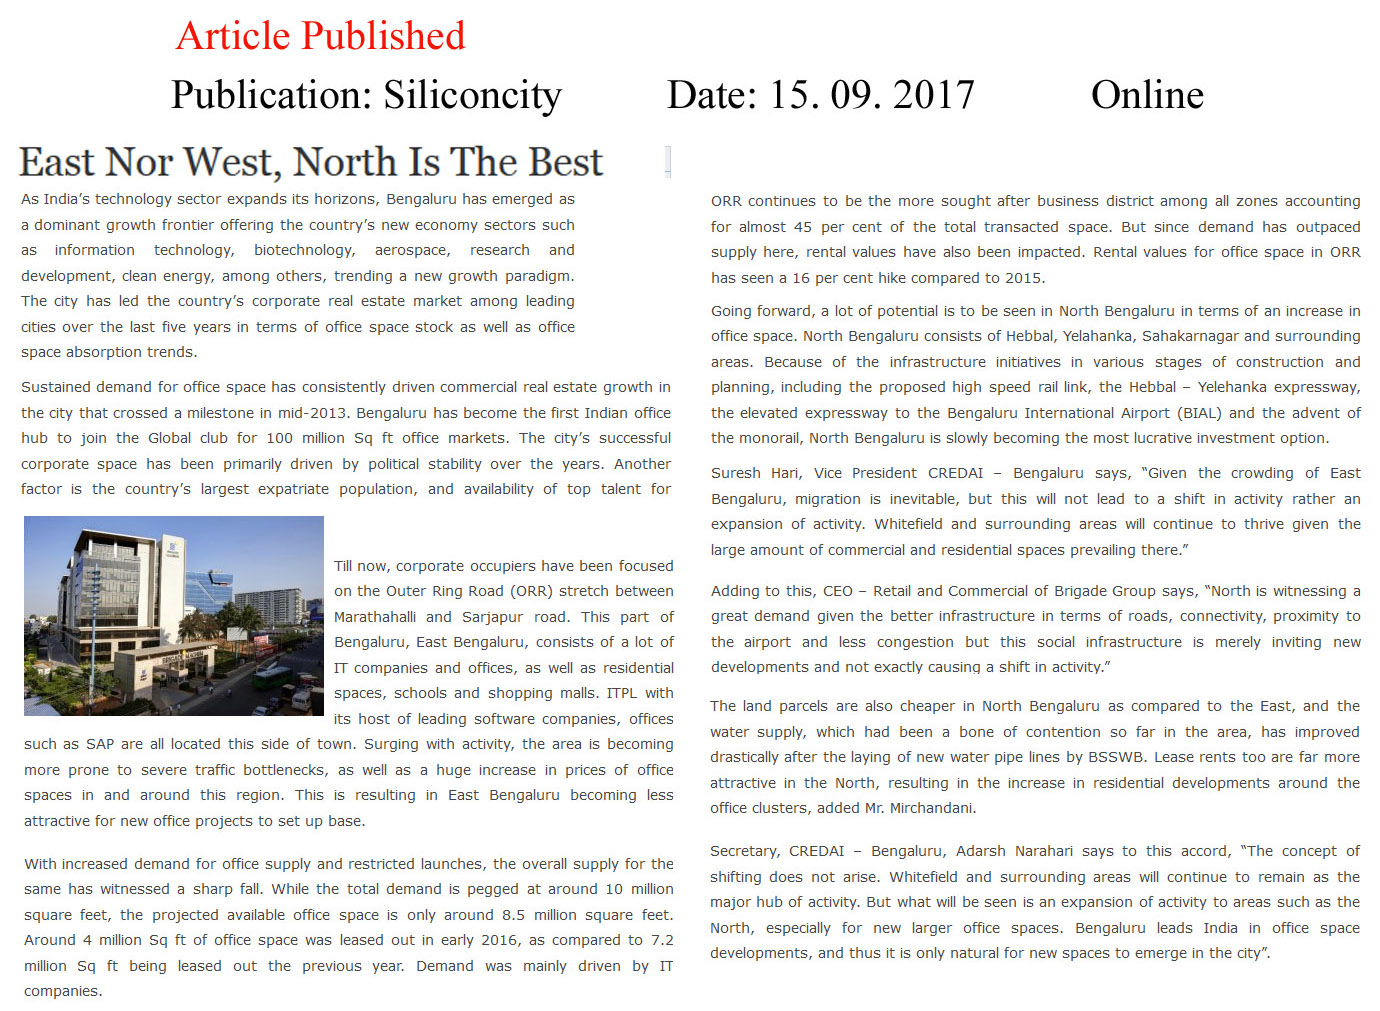 East nor West, North is the best—Silicon City–Online